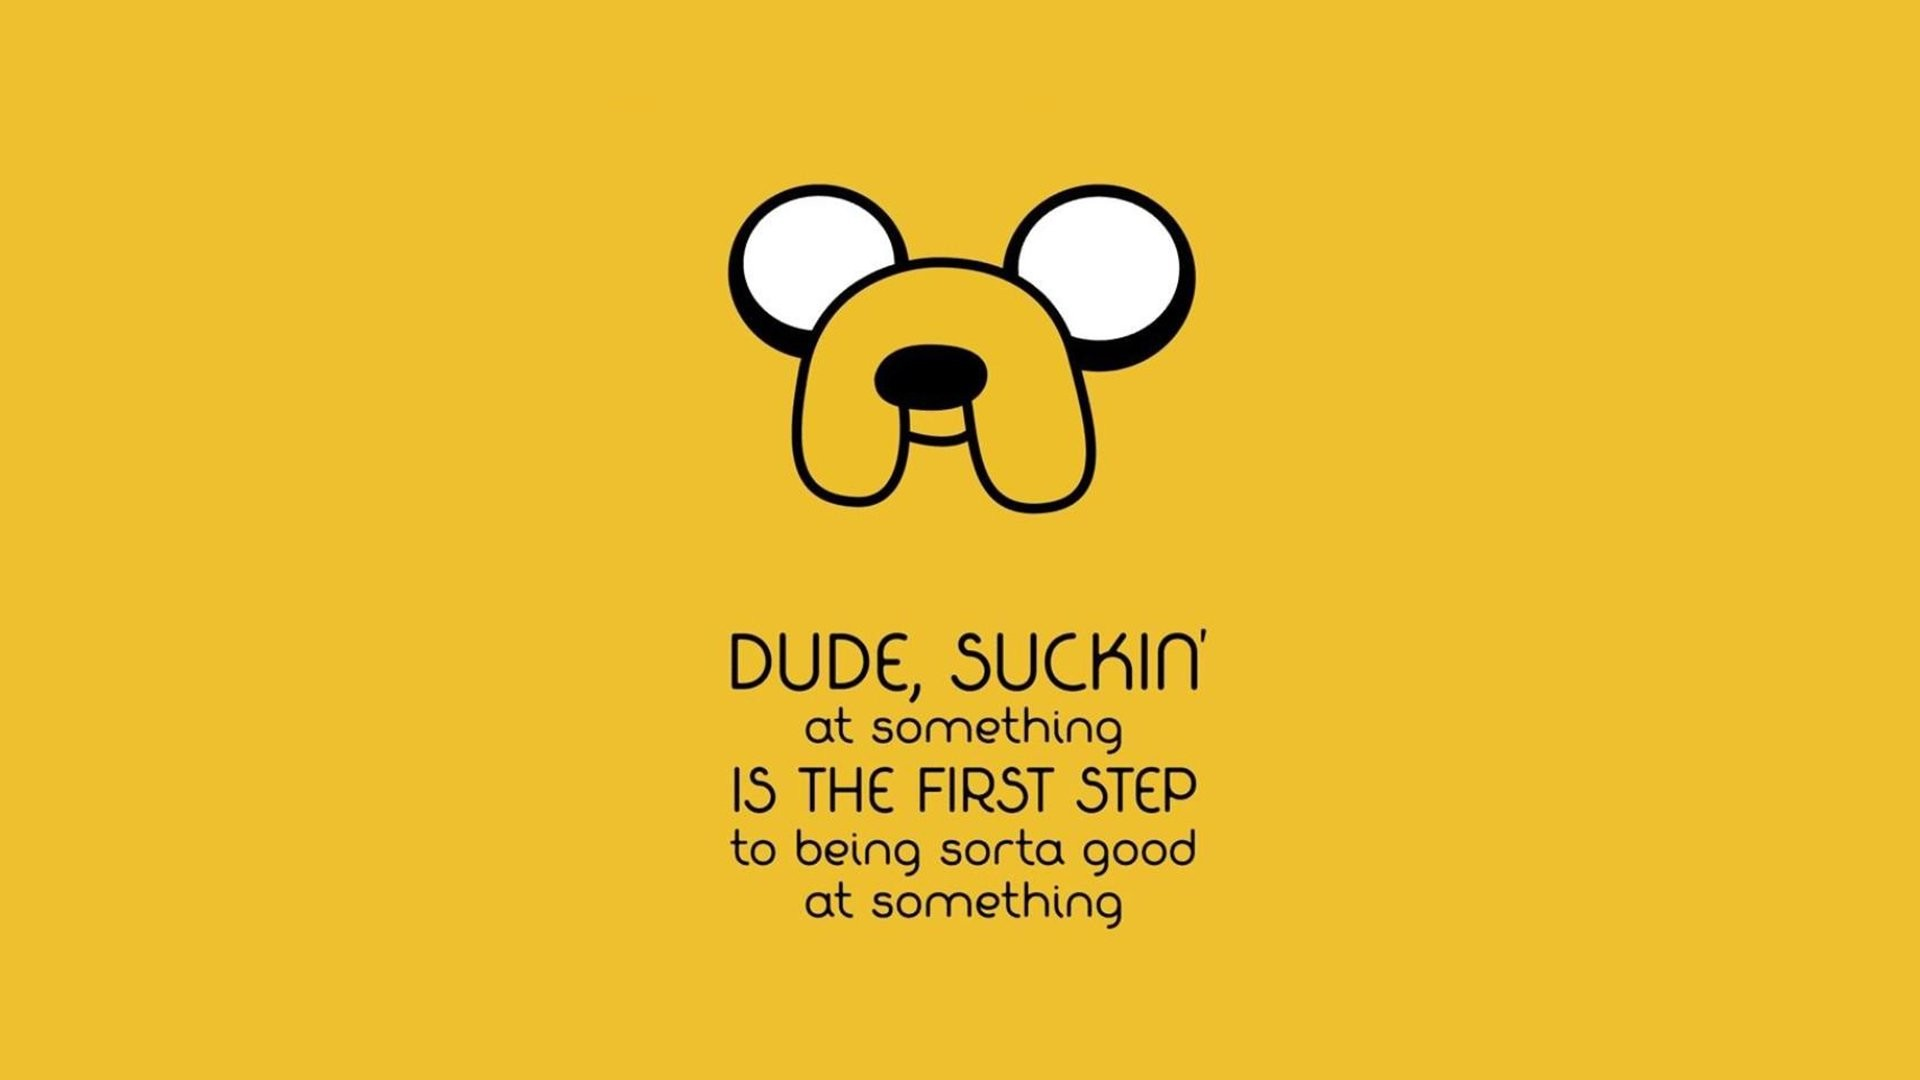 Jake the Dog Wallpaper 64 images 1920x1080